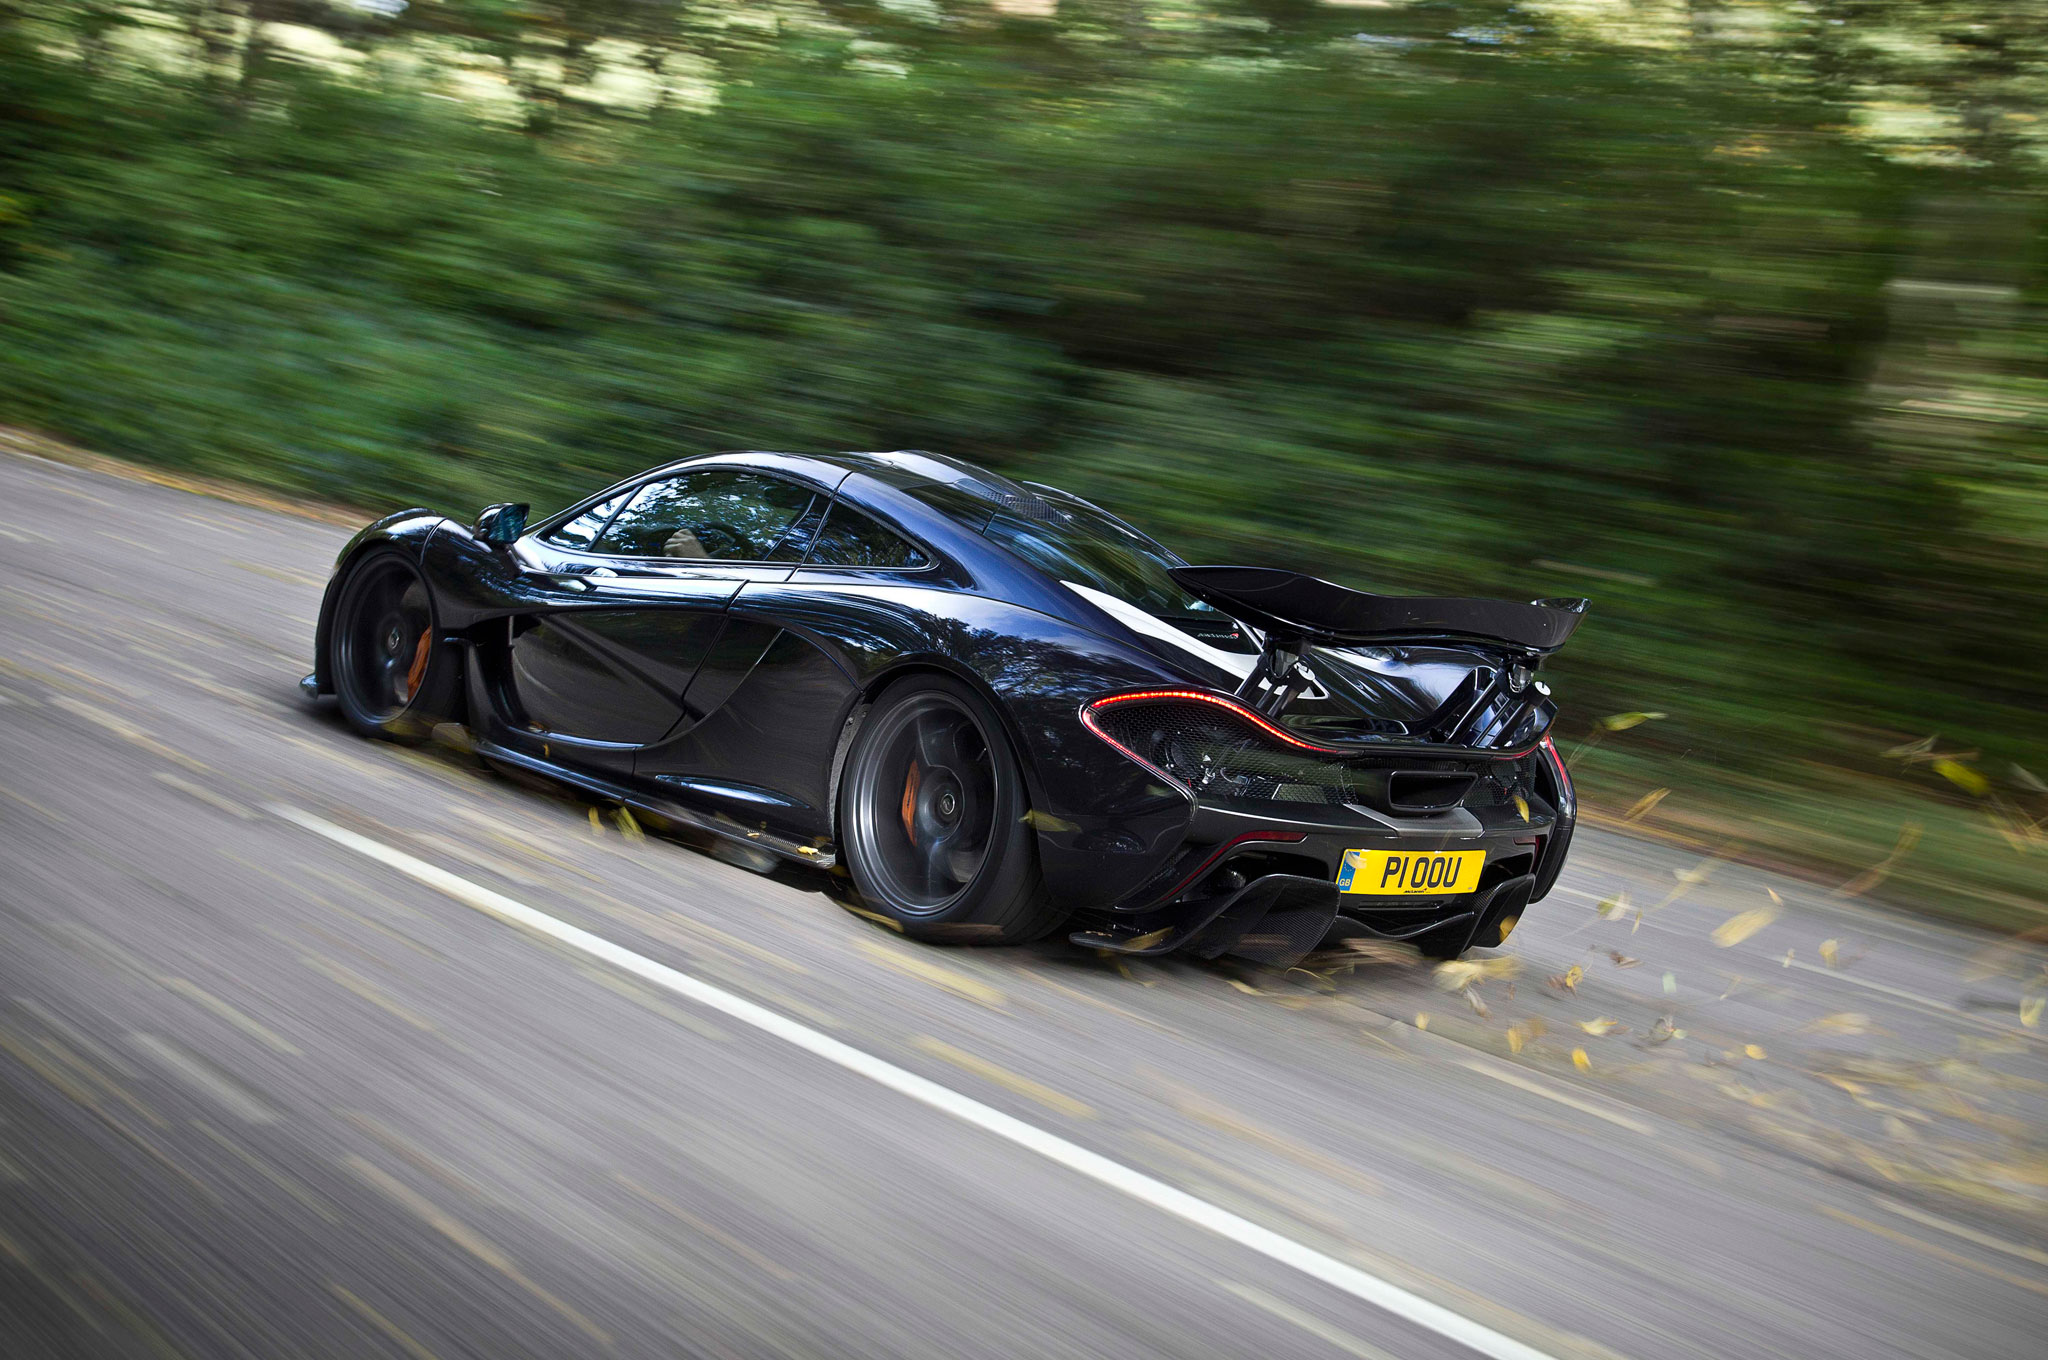 Free Download Your Ridiculously Cool Mclaren P1 Wallpaper Is Here 2048x1360 For Your Desktop Mobile Tablet Explore 43 Mclaren P1 Wallpaper Black Mclaren P1 Hd Wallpaper Mclaren Wallpapers High